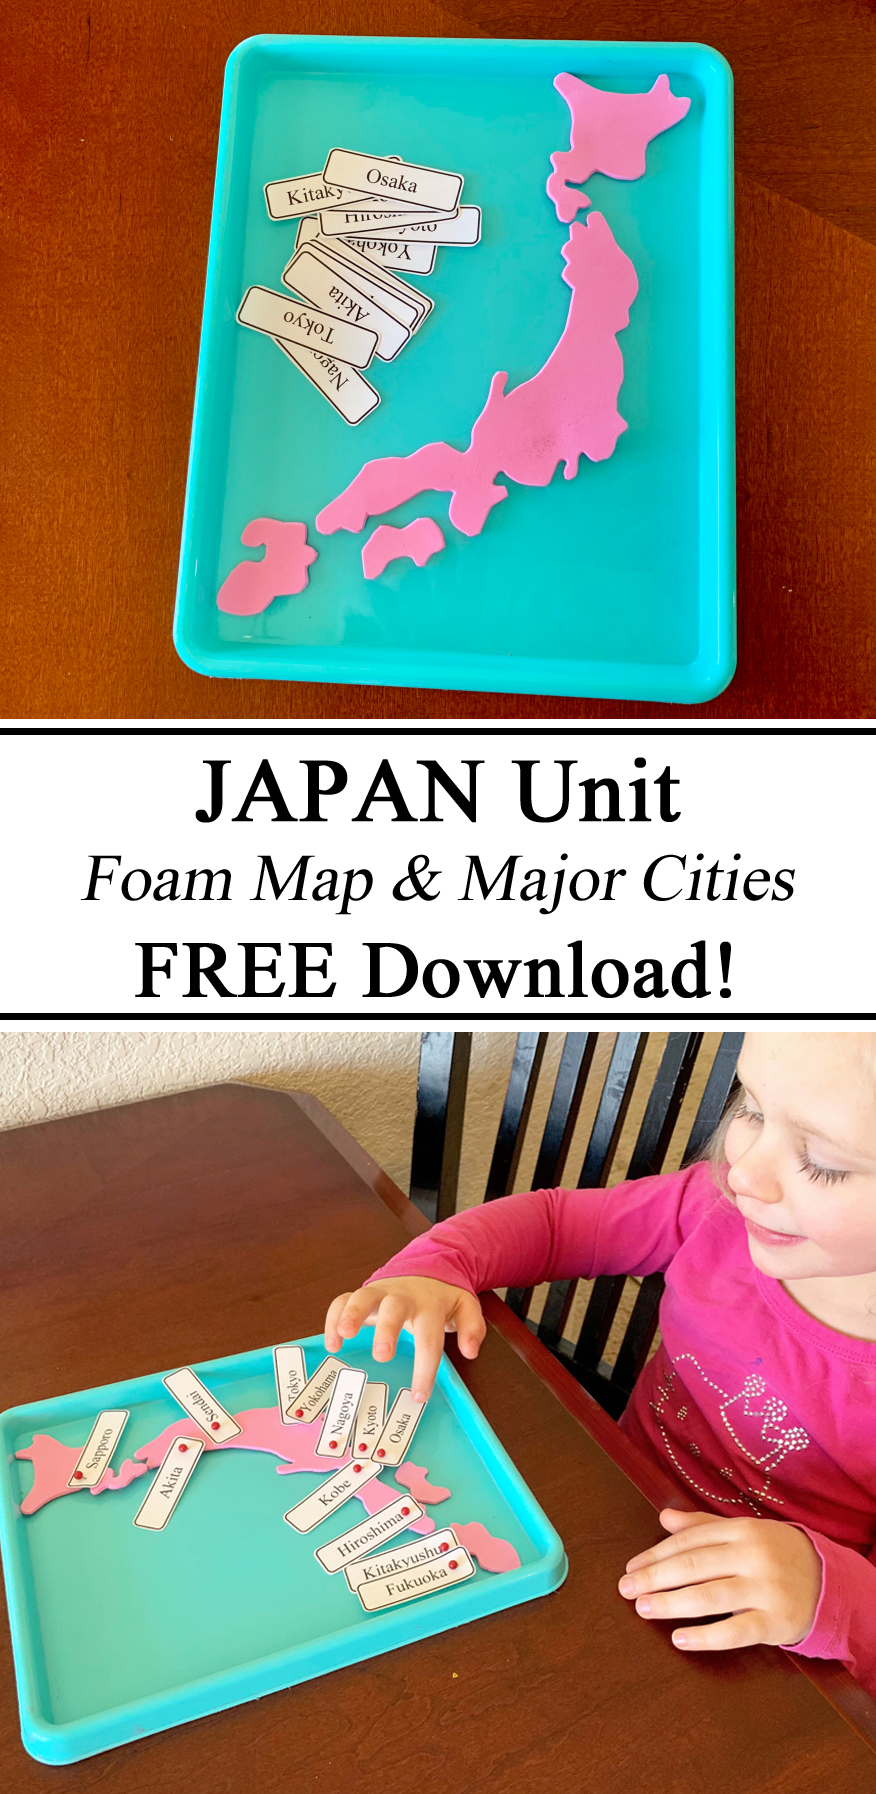 Map, Geography, Homeschooling, Homeschool, Foam, Hands on Learning, Printables, Free, Download, Educational, Learning Countries, Travelingthroughlearning, Montessori, Inspired, Ideas, Preschool, Kindergarten, PreK, Waldorf, Visual Learning, Resources, Teachers, Parents, Japan Unit, Japanese, Little Passports